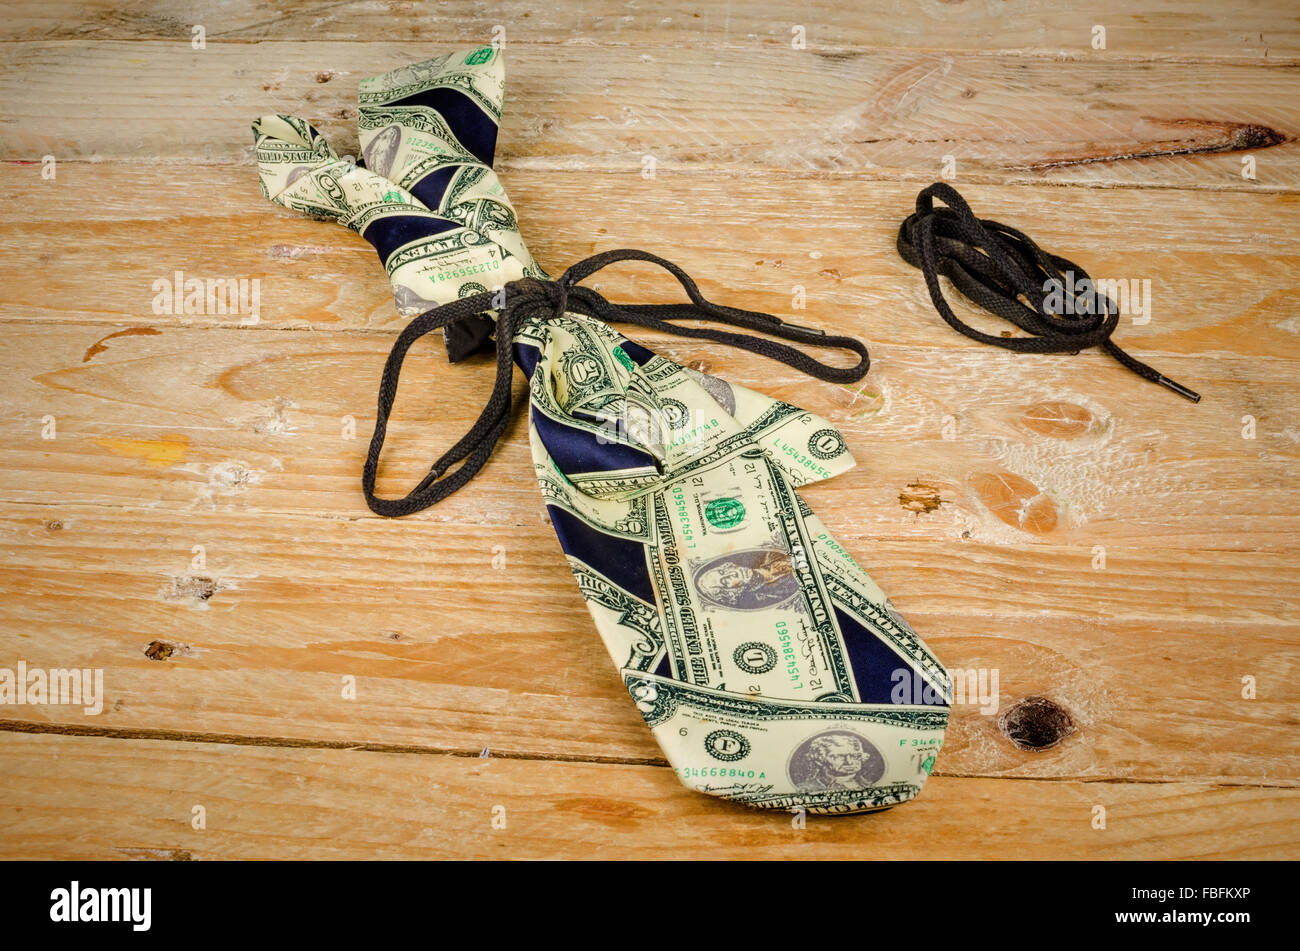 On a shoestring, a tight finances concept - Stock Image